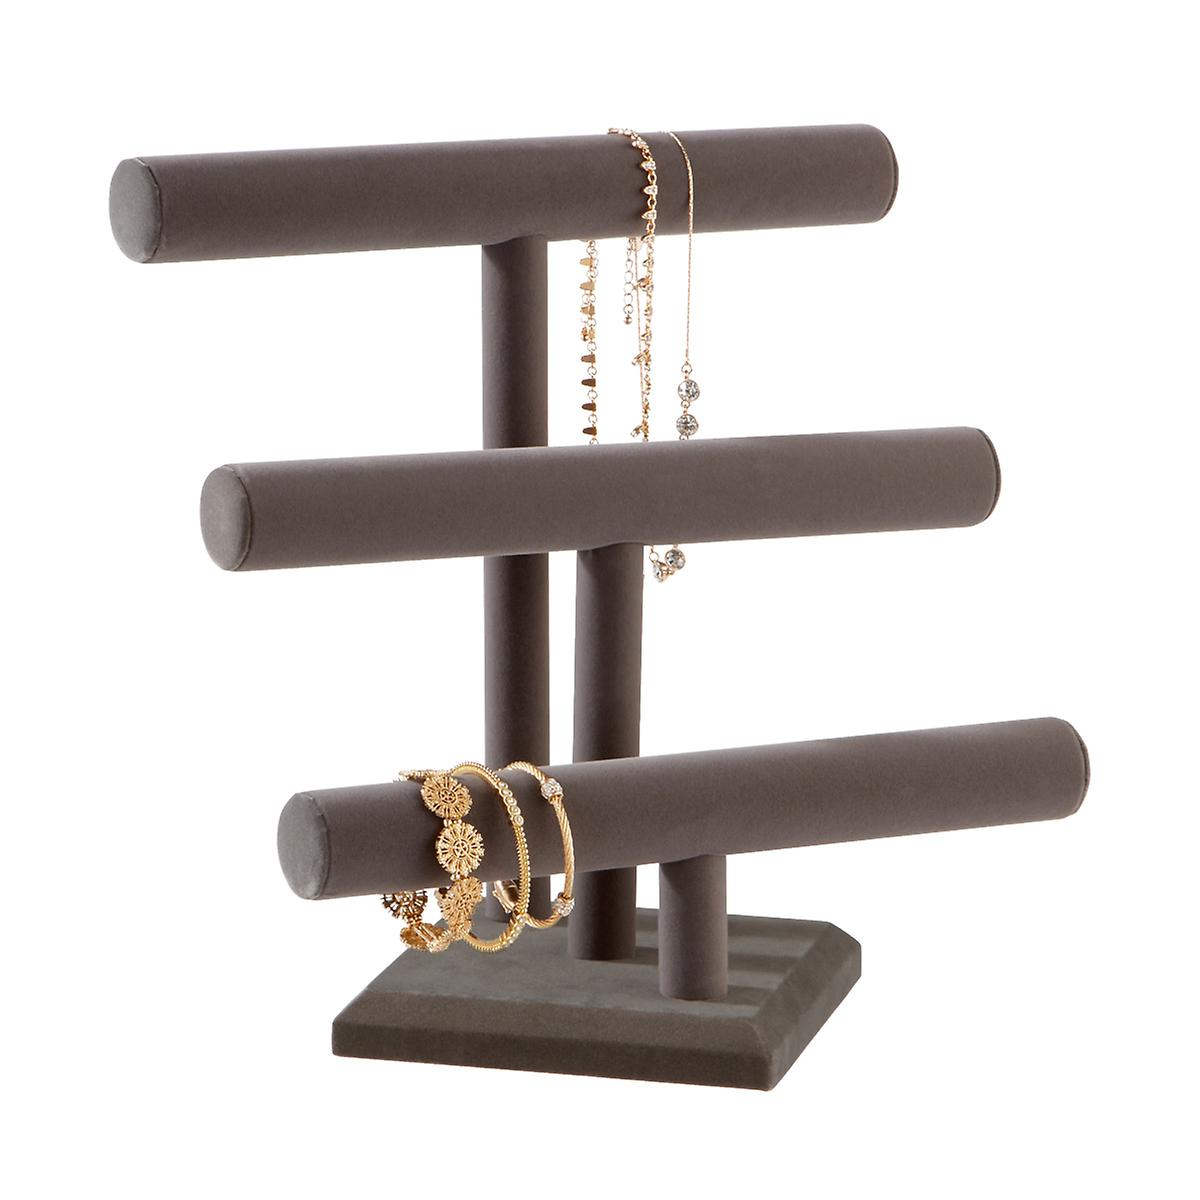 Triple-Tiered Jewelry Organizer | The Container Store